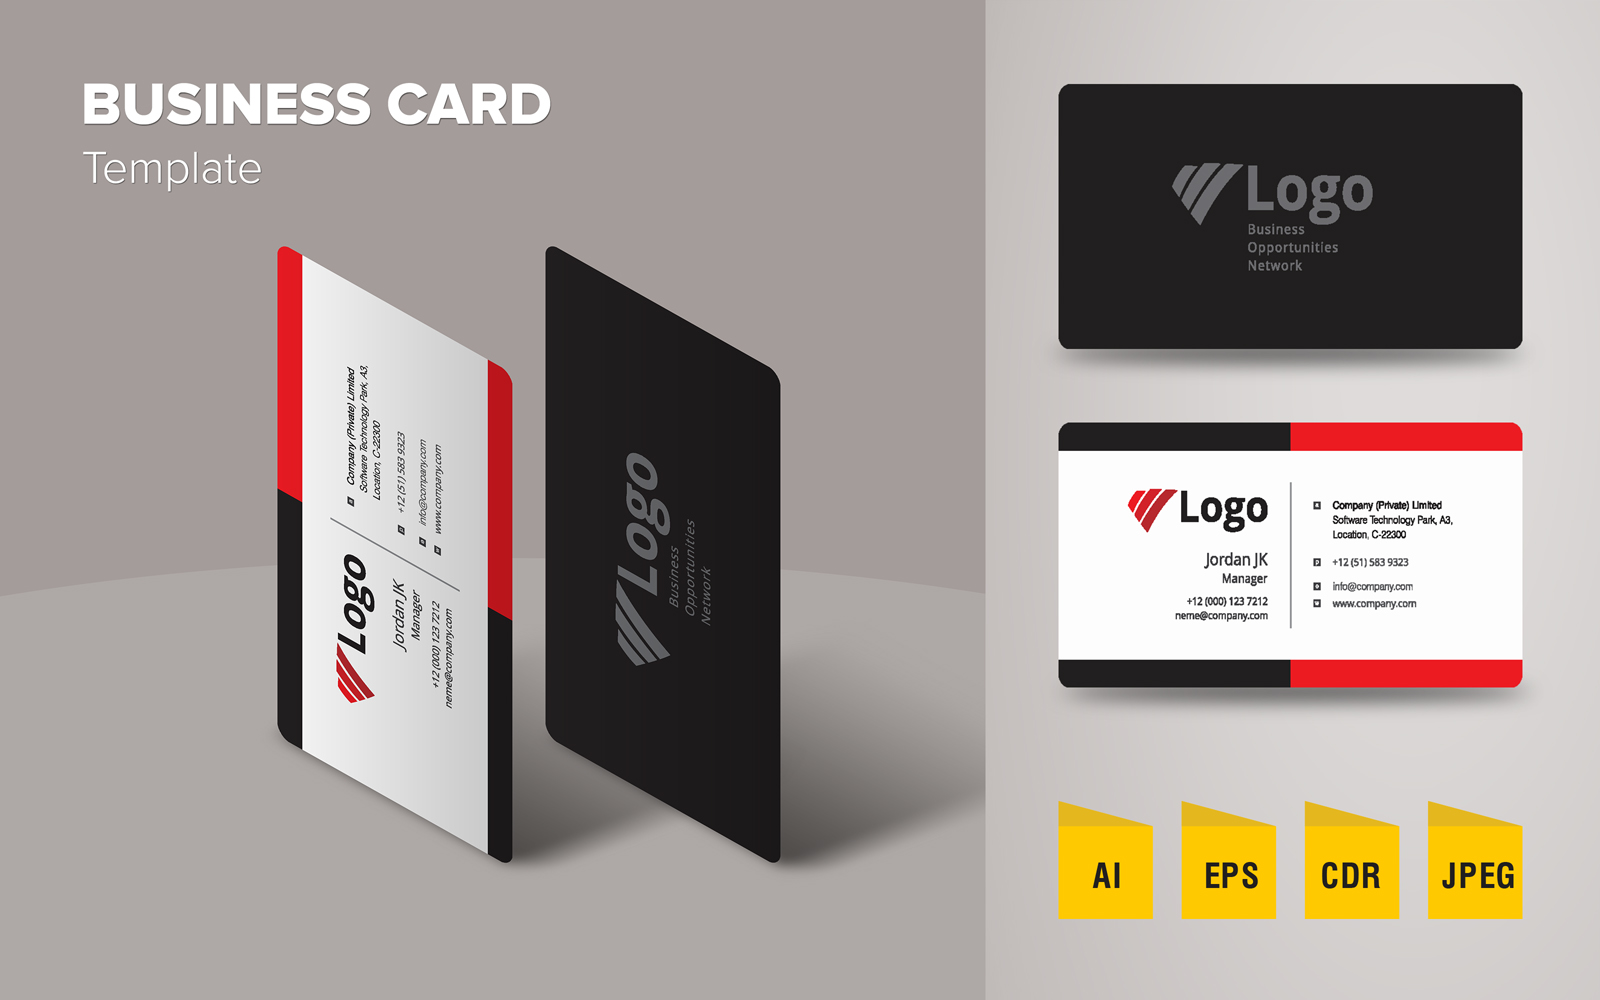 Professional Business Card Design Template de Identidade Corporativa №125634